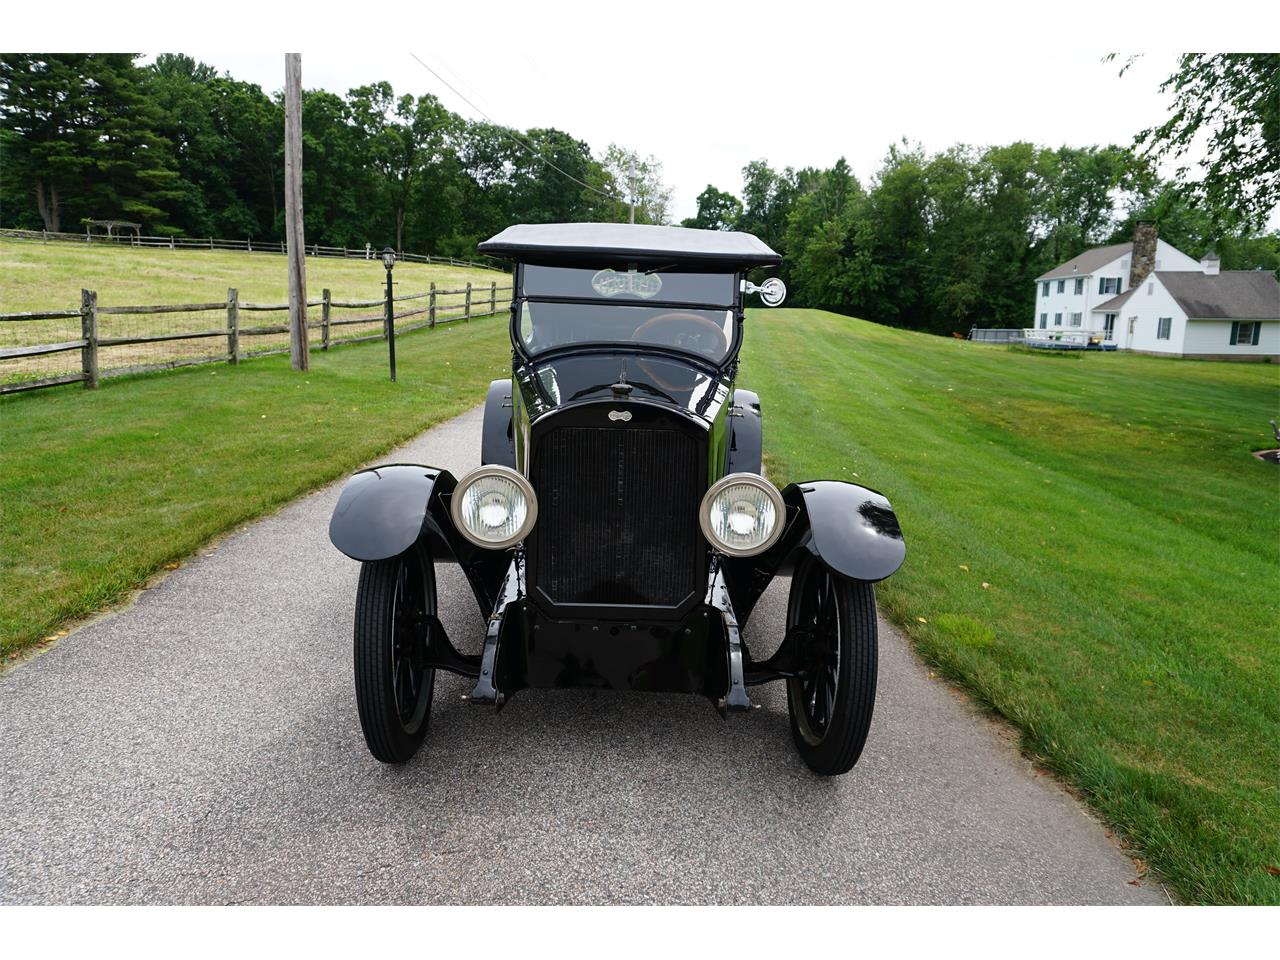 1920 Cleveland Touring (CC-1233983) for sale in Ellington, Connecticut